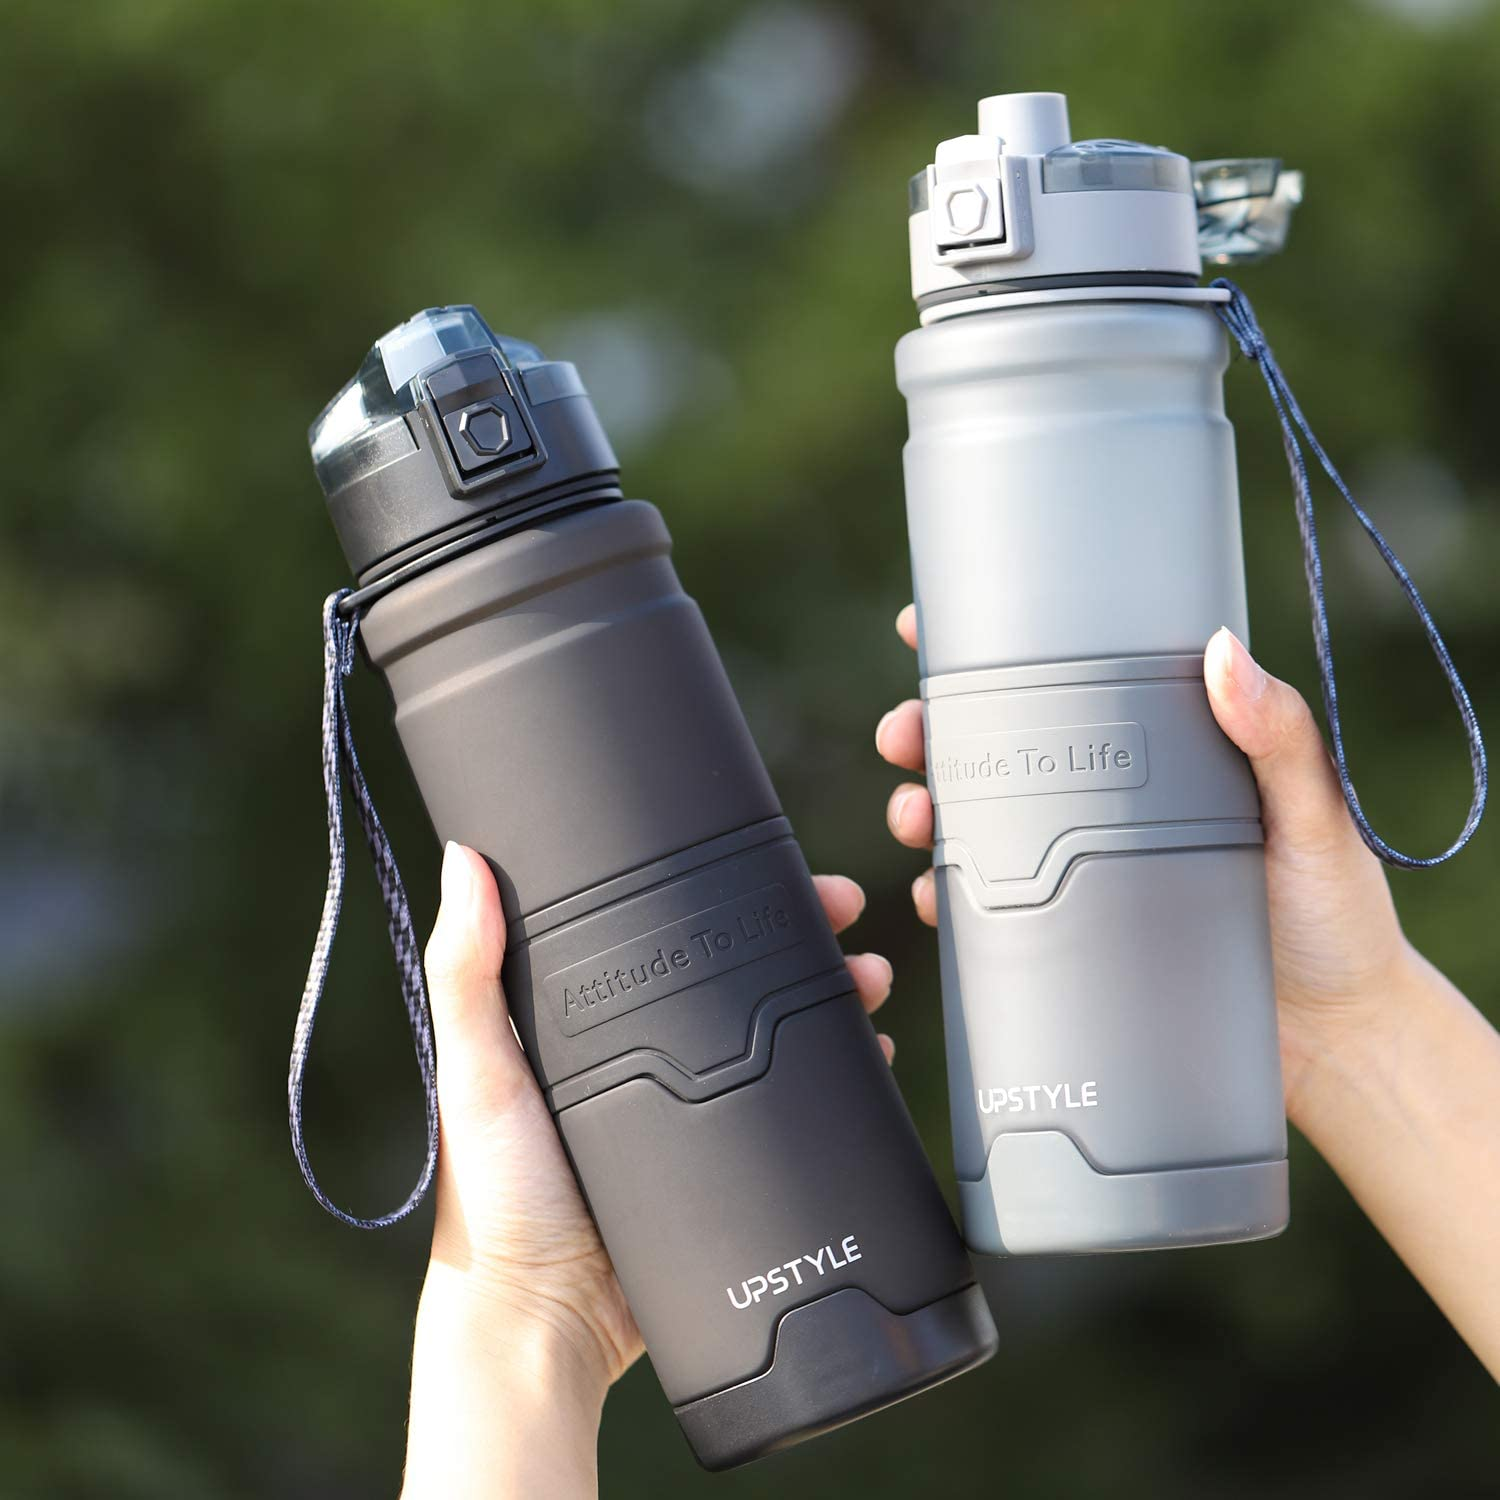 Number-One Sports Water Bottle 36oz//1000ml Leakproof Motivational Water Bottle Fruit Infuser Fitness Hiking Camping Yoga-Grey BPA Free with Filter /& Lock Lid Drink Bottles for Outdoor Cycling